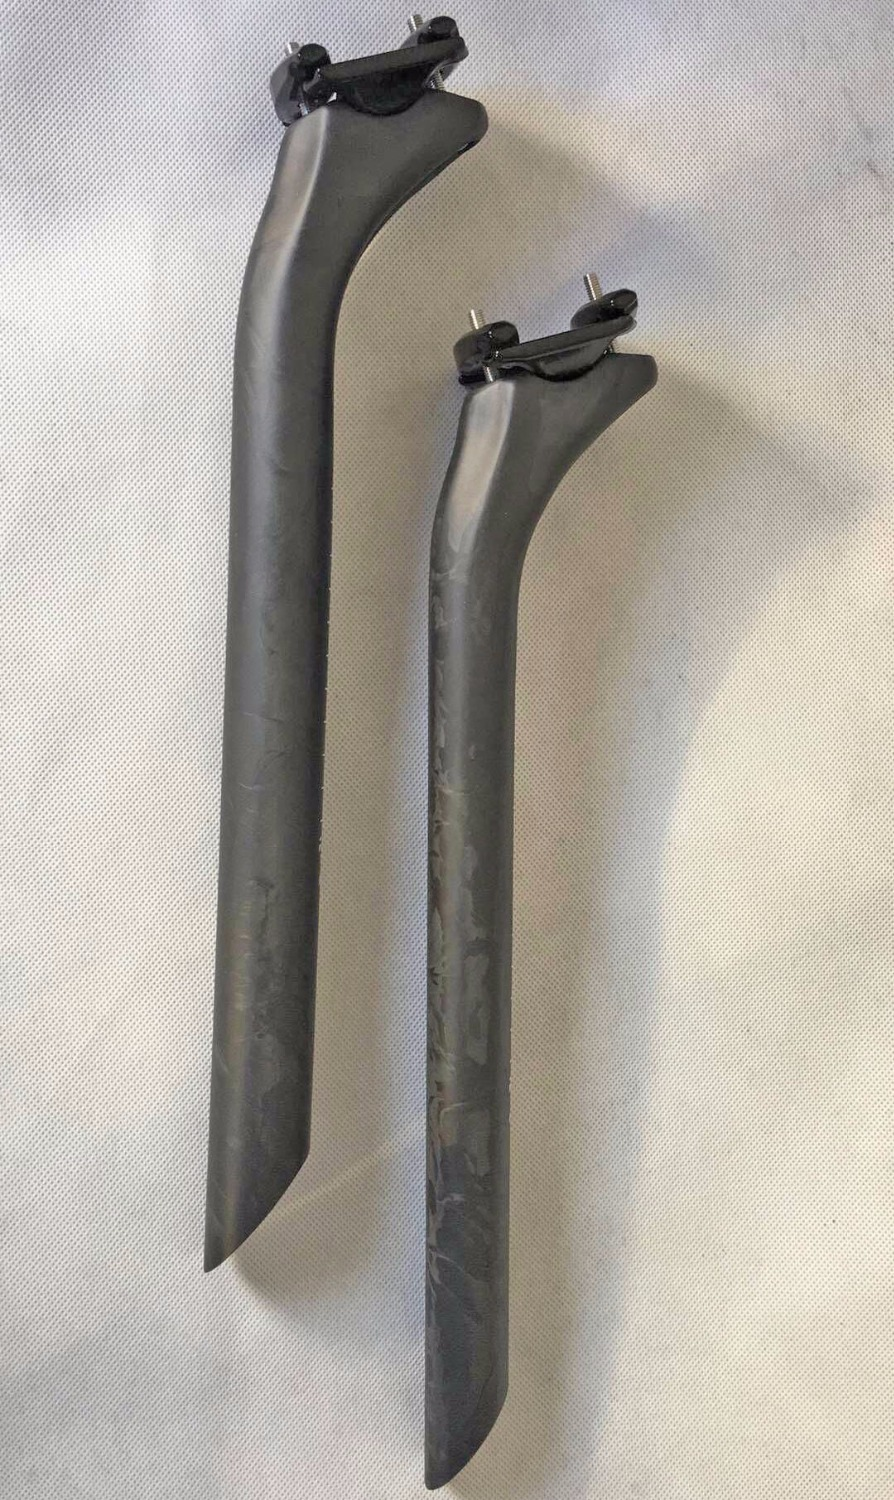 Carbon fiber seatpost after seat the road bicycle seatpost seat tube rod carbon seatpost seat tube offset 25mm mountain parts elitaone offset seat post carbon fiber